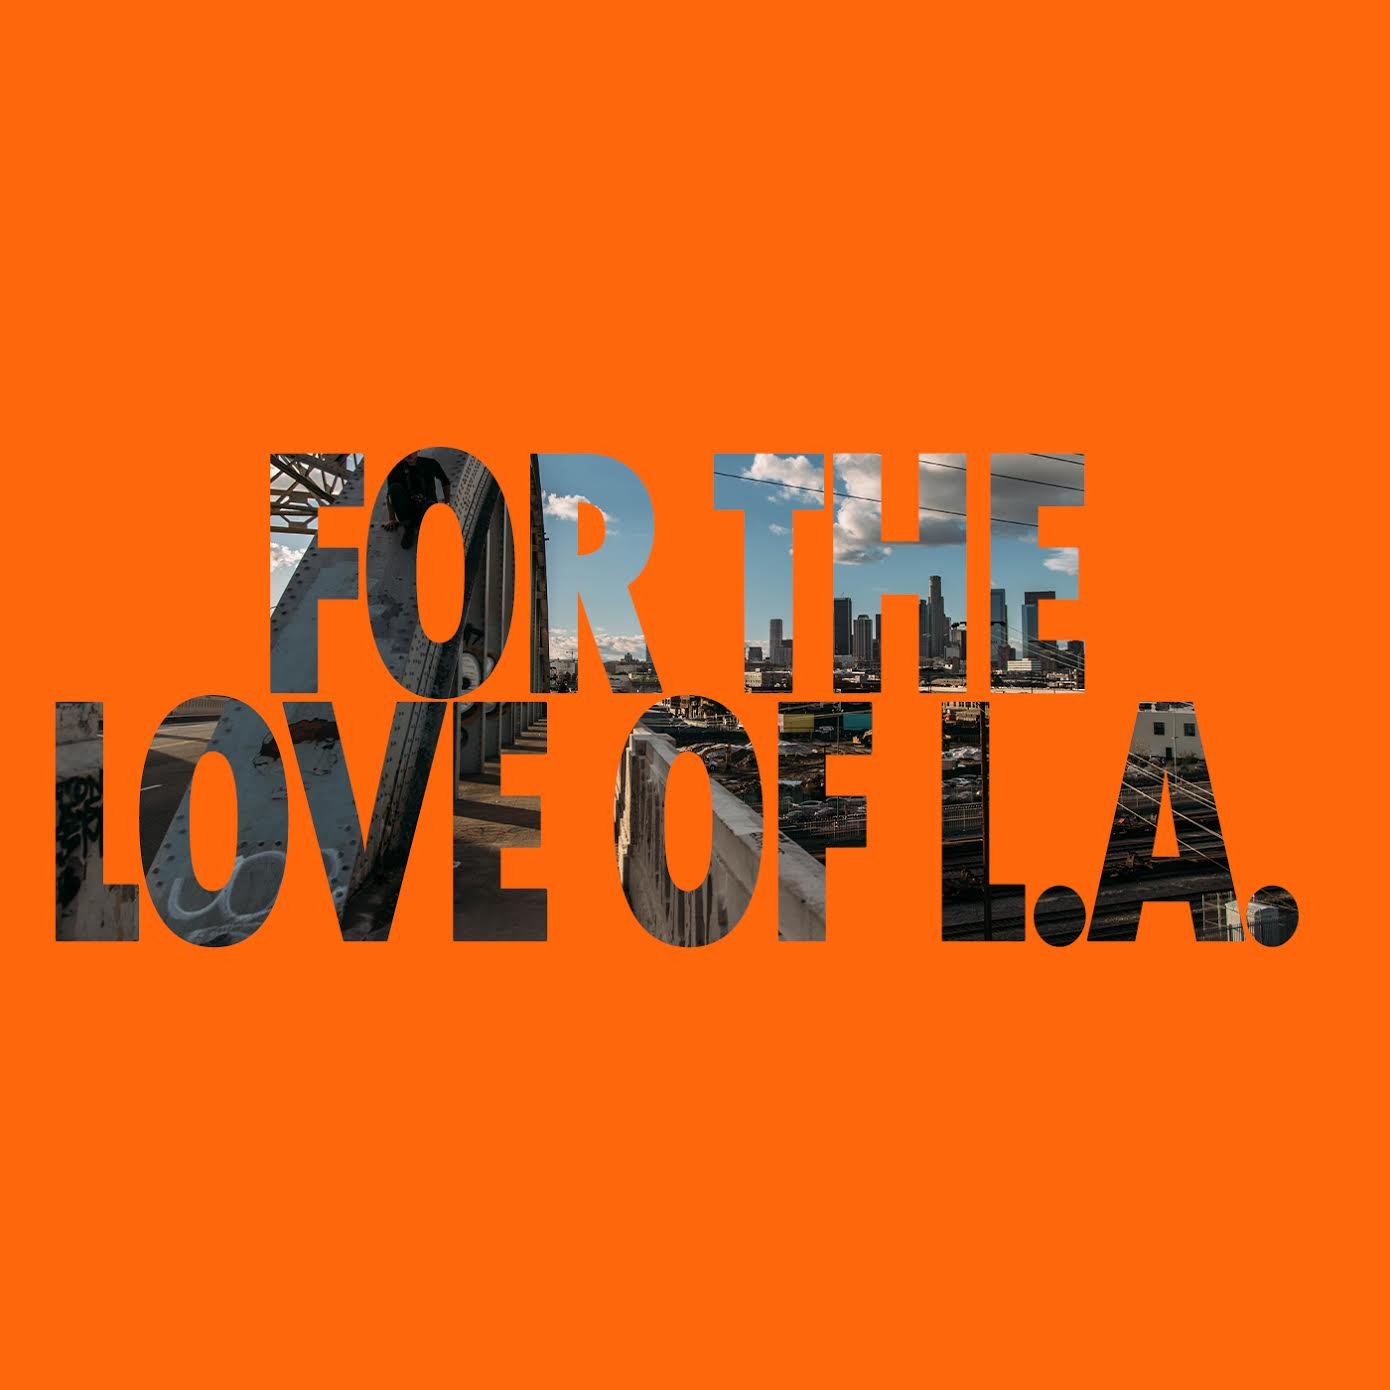 Los Angeles Music Center 'For the Love of LA' logo.